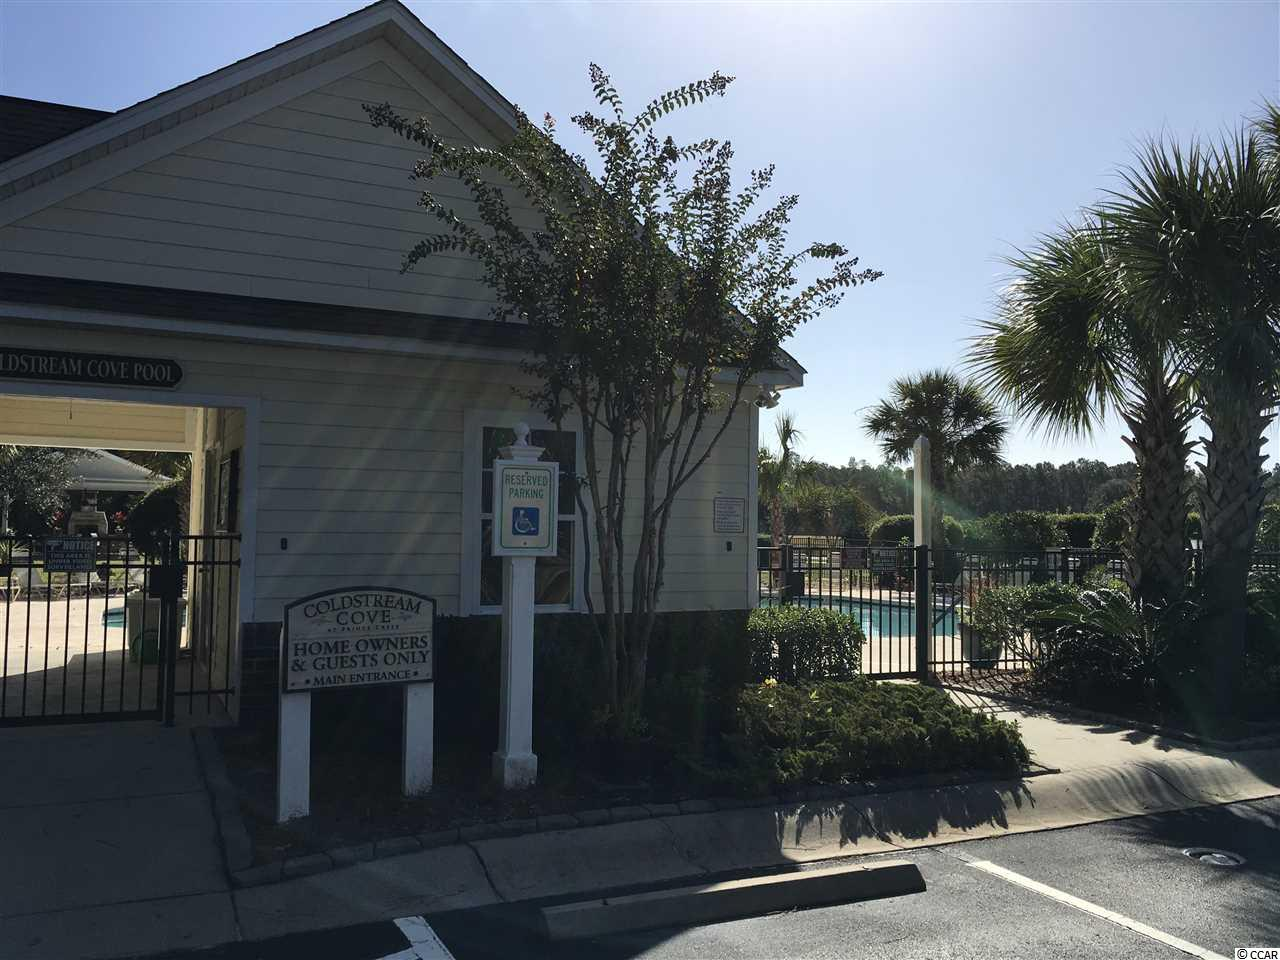 Additional photo for property listing at 129 COLD STREAM COVE LOOP UNIT 1402 129 COLD STREAM COVE LOOP UNIT 1402 Murrells Inlet, South Carolina 29576 United States